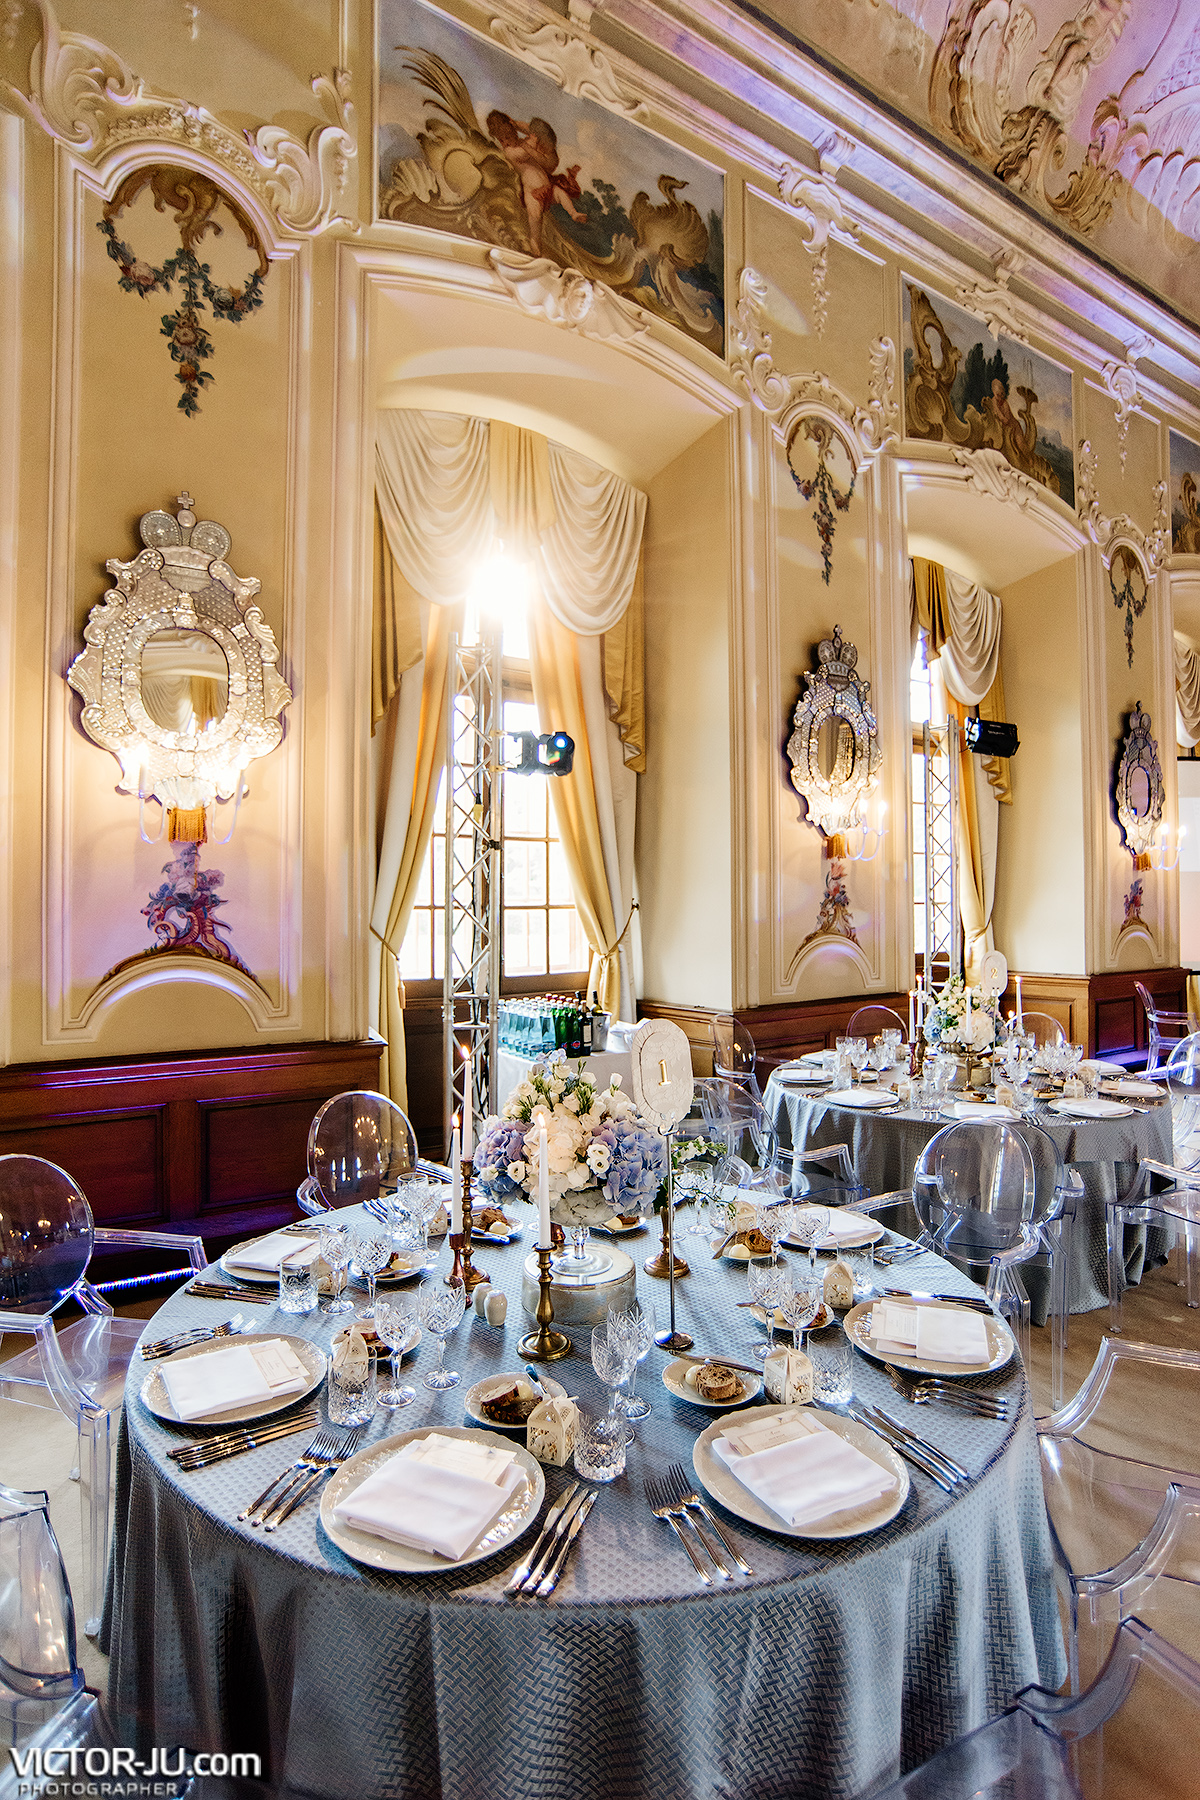 Professional decor for a wedding in the Czech Republic